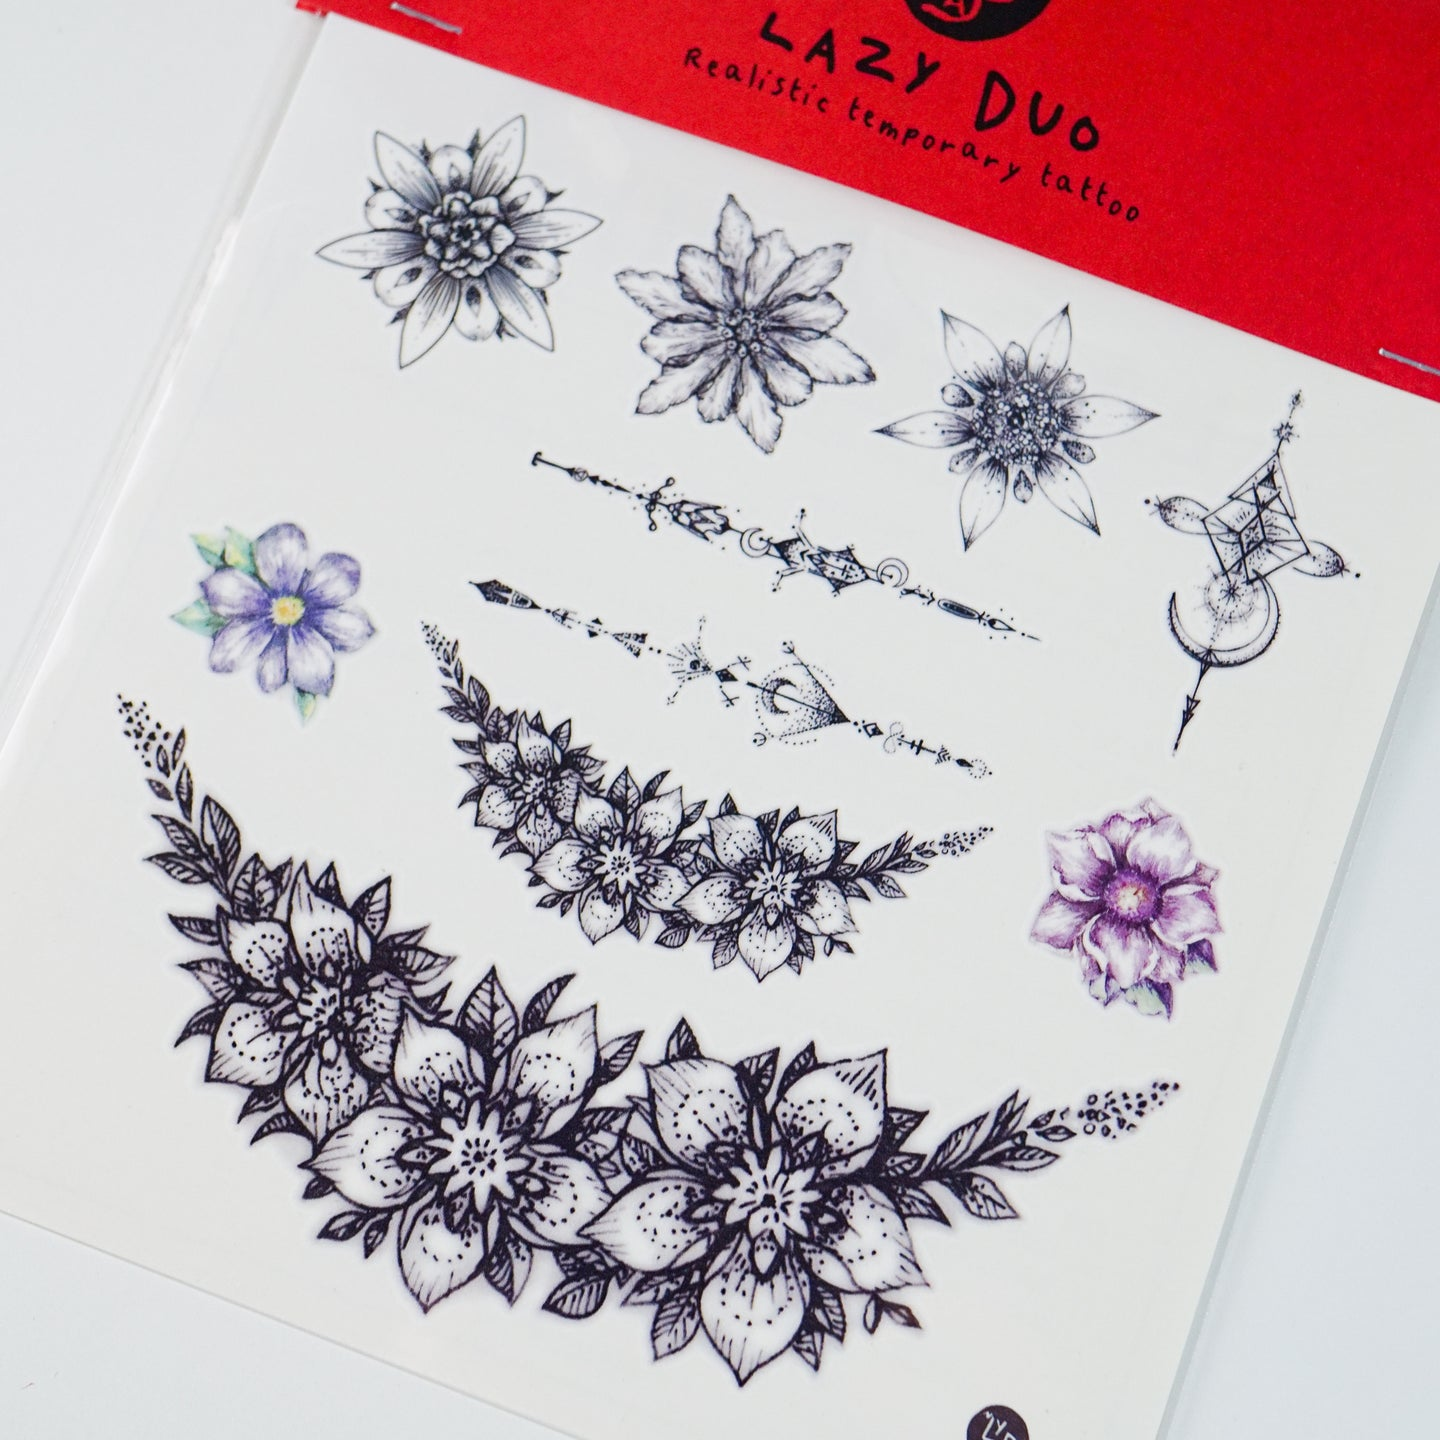 Flower Floral Dreamcatcher Tattoo Ideas情侶刺青貓刺青紋身貼紙網店價錢少量印Couple Tattoo Matching Sneaky Cat Black Cat Tattoo 預約紋身貼紙設計印刷訂製作DIY Waiman Tattoo Artist香港原創手繪刺青紋身貼紙LAZY DUO Premium Temporary Tattoo Stickers Professional Printing Tattoo Shop Hong Kong Customise Custom Small Order自訂客製少量印刷大量批發特快專業優質彩色金屬色廣告宣傳禮品 Online Gift Shop